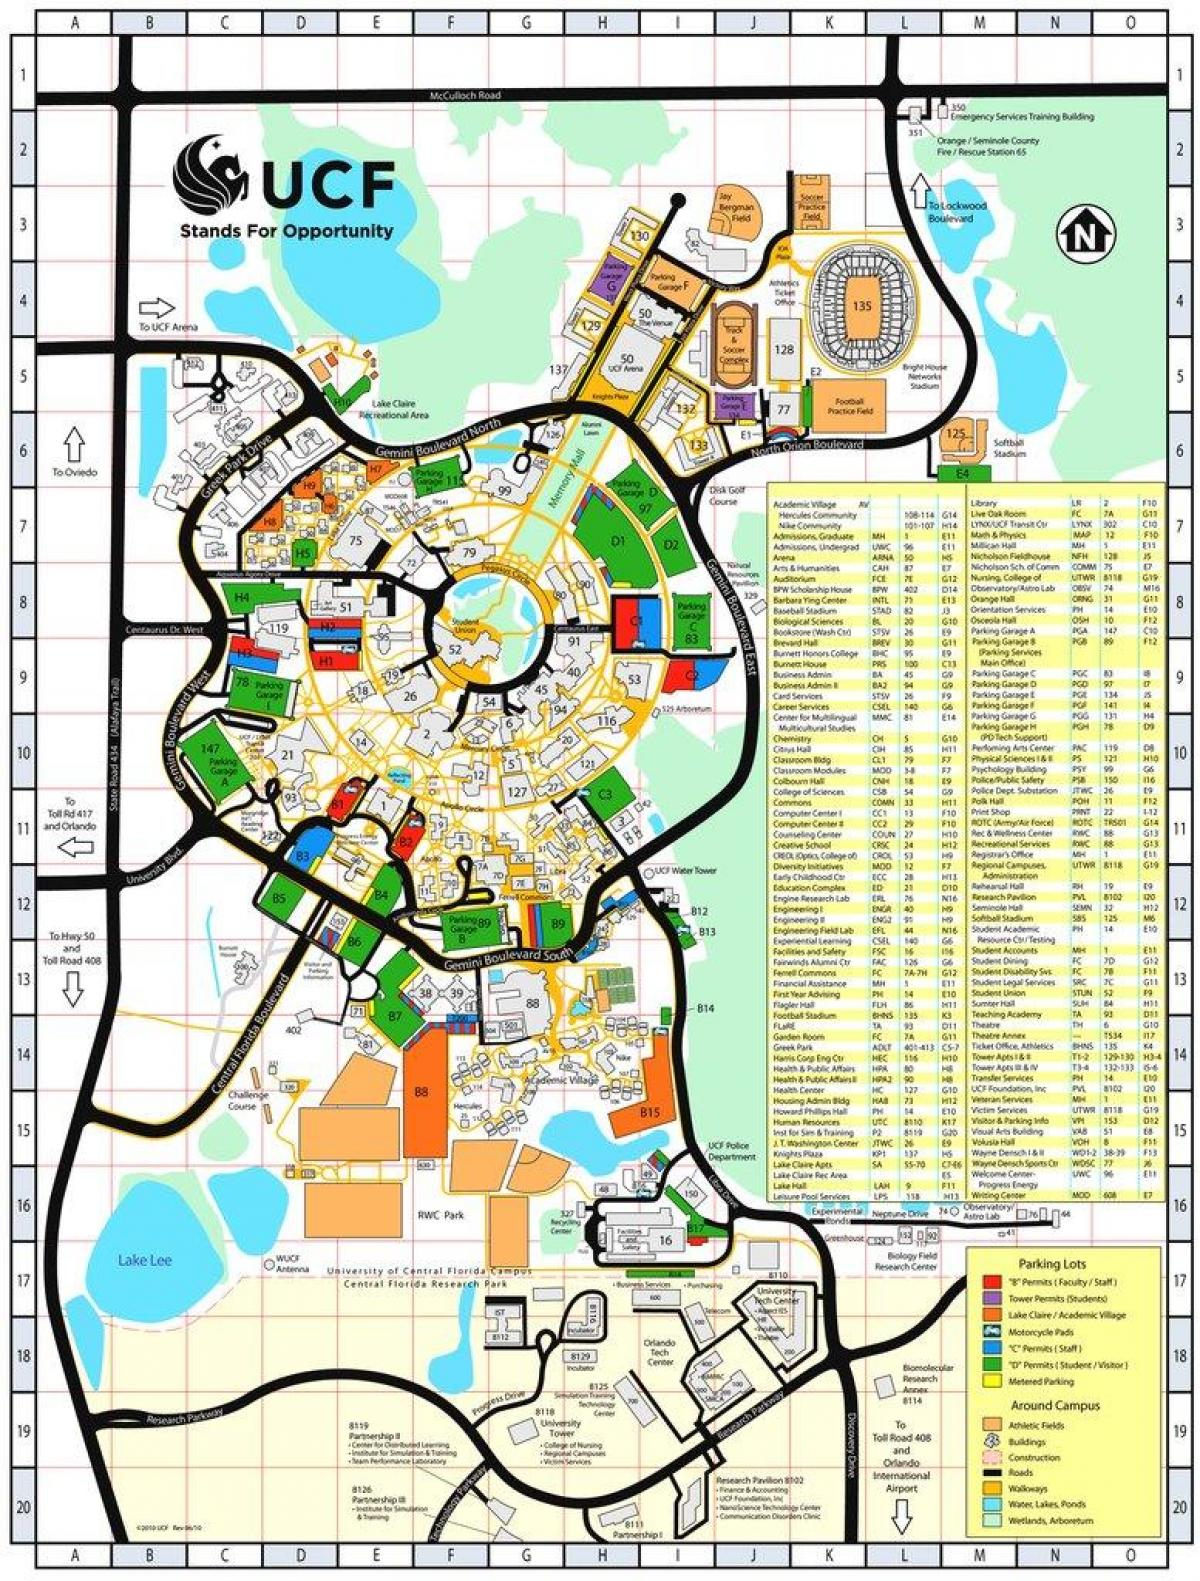 ucfmap Ucf Campus Map Building on ucf map with building numbers, ucf housing map, college park map building, ucf parking map, unf campus map building, smu campus map building, ecu campus map building, fau campus map building, uf campus map building, usf campus map building,